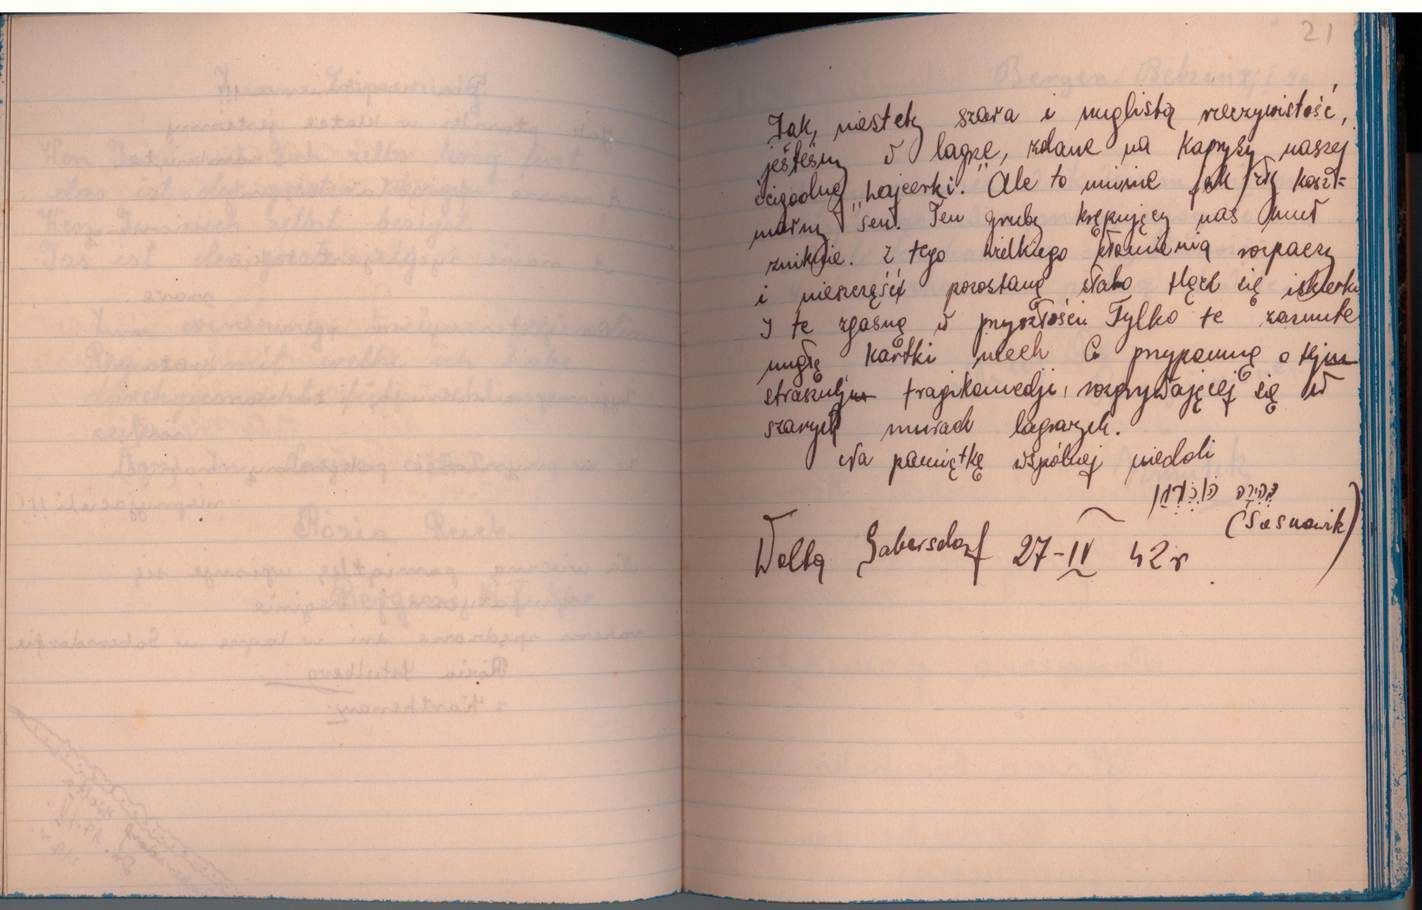 Diary Entry as a Jewish Child During Hitler's reign